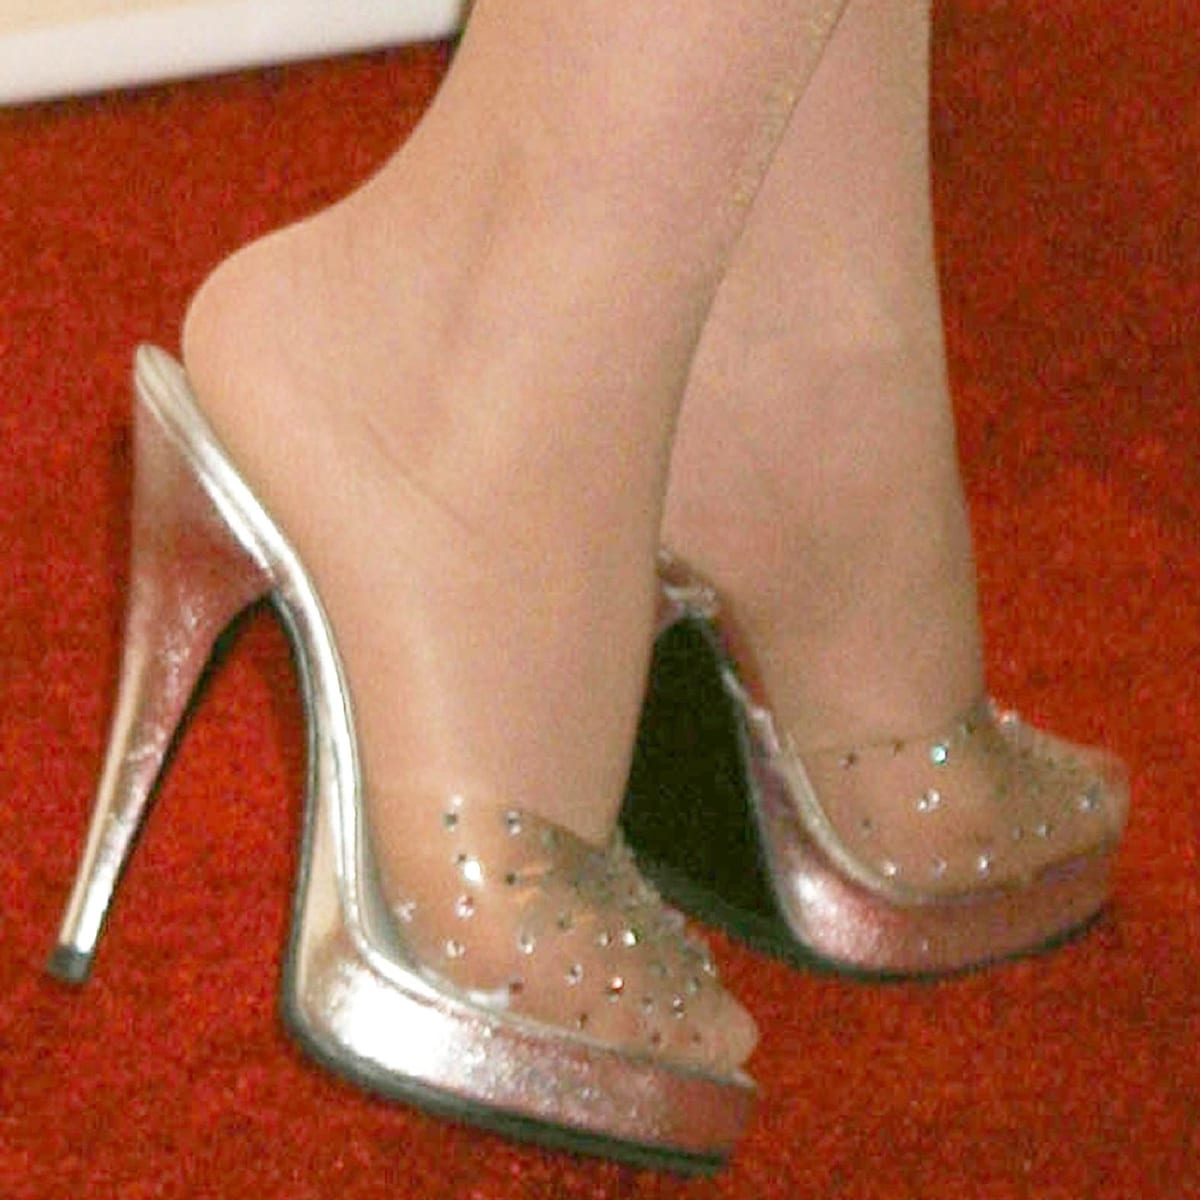 Dolly Parton shows off her size 5.5 (US) feet in high heels